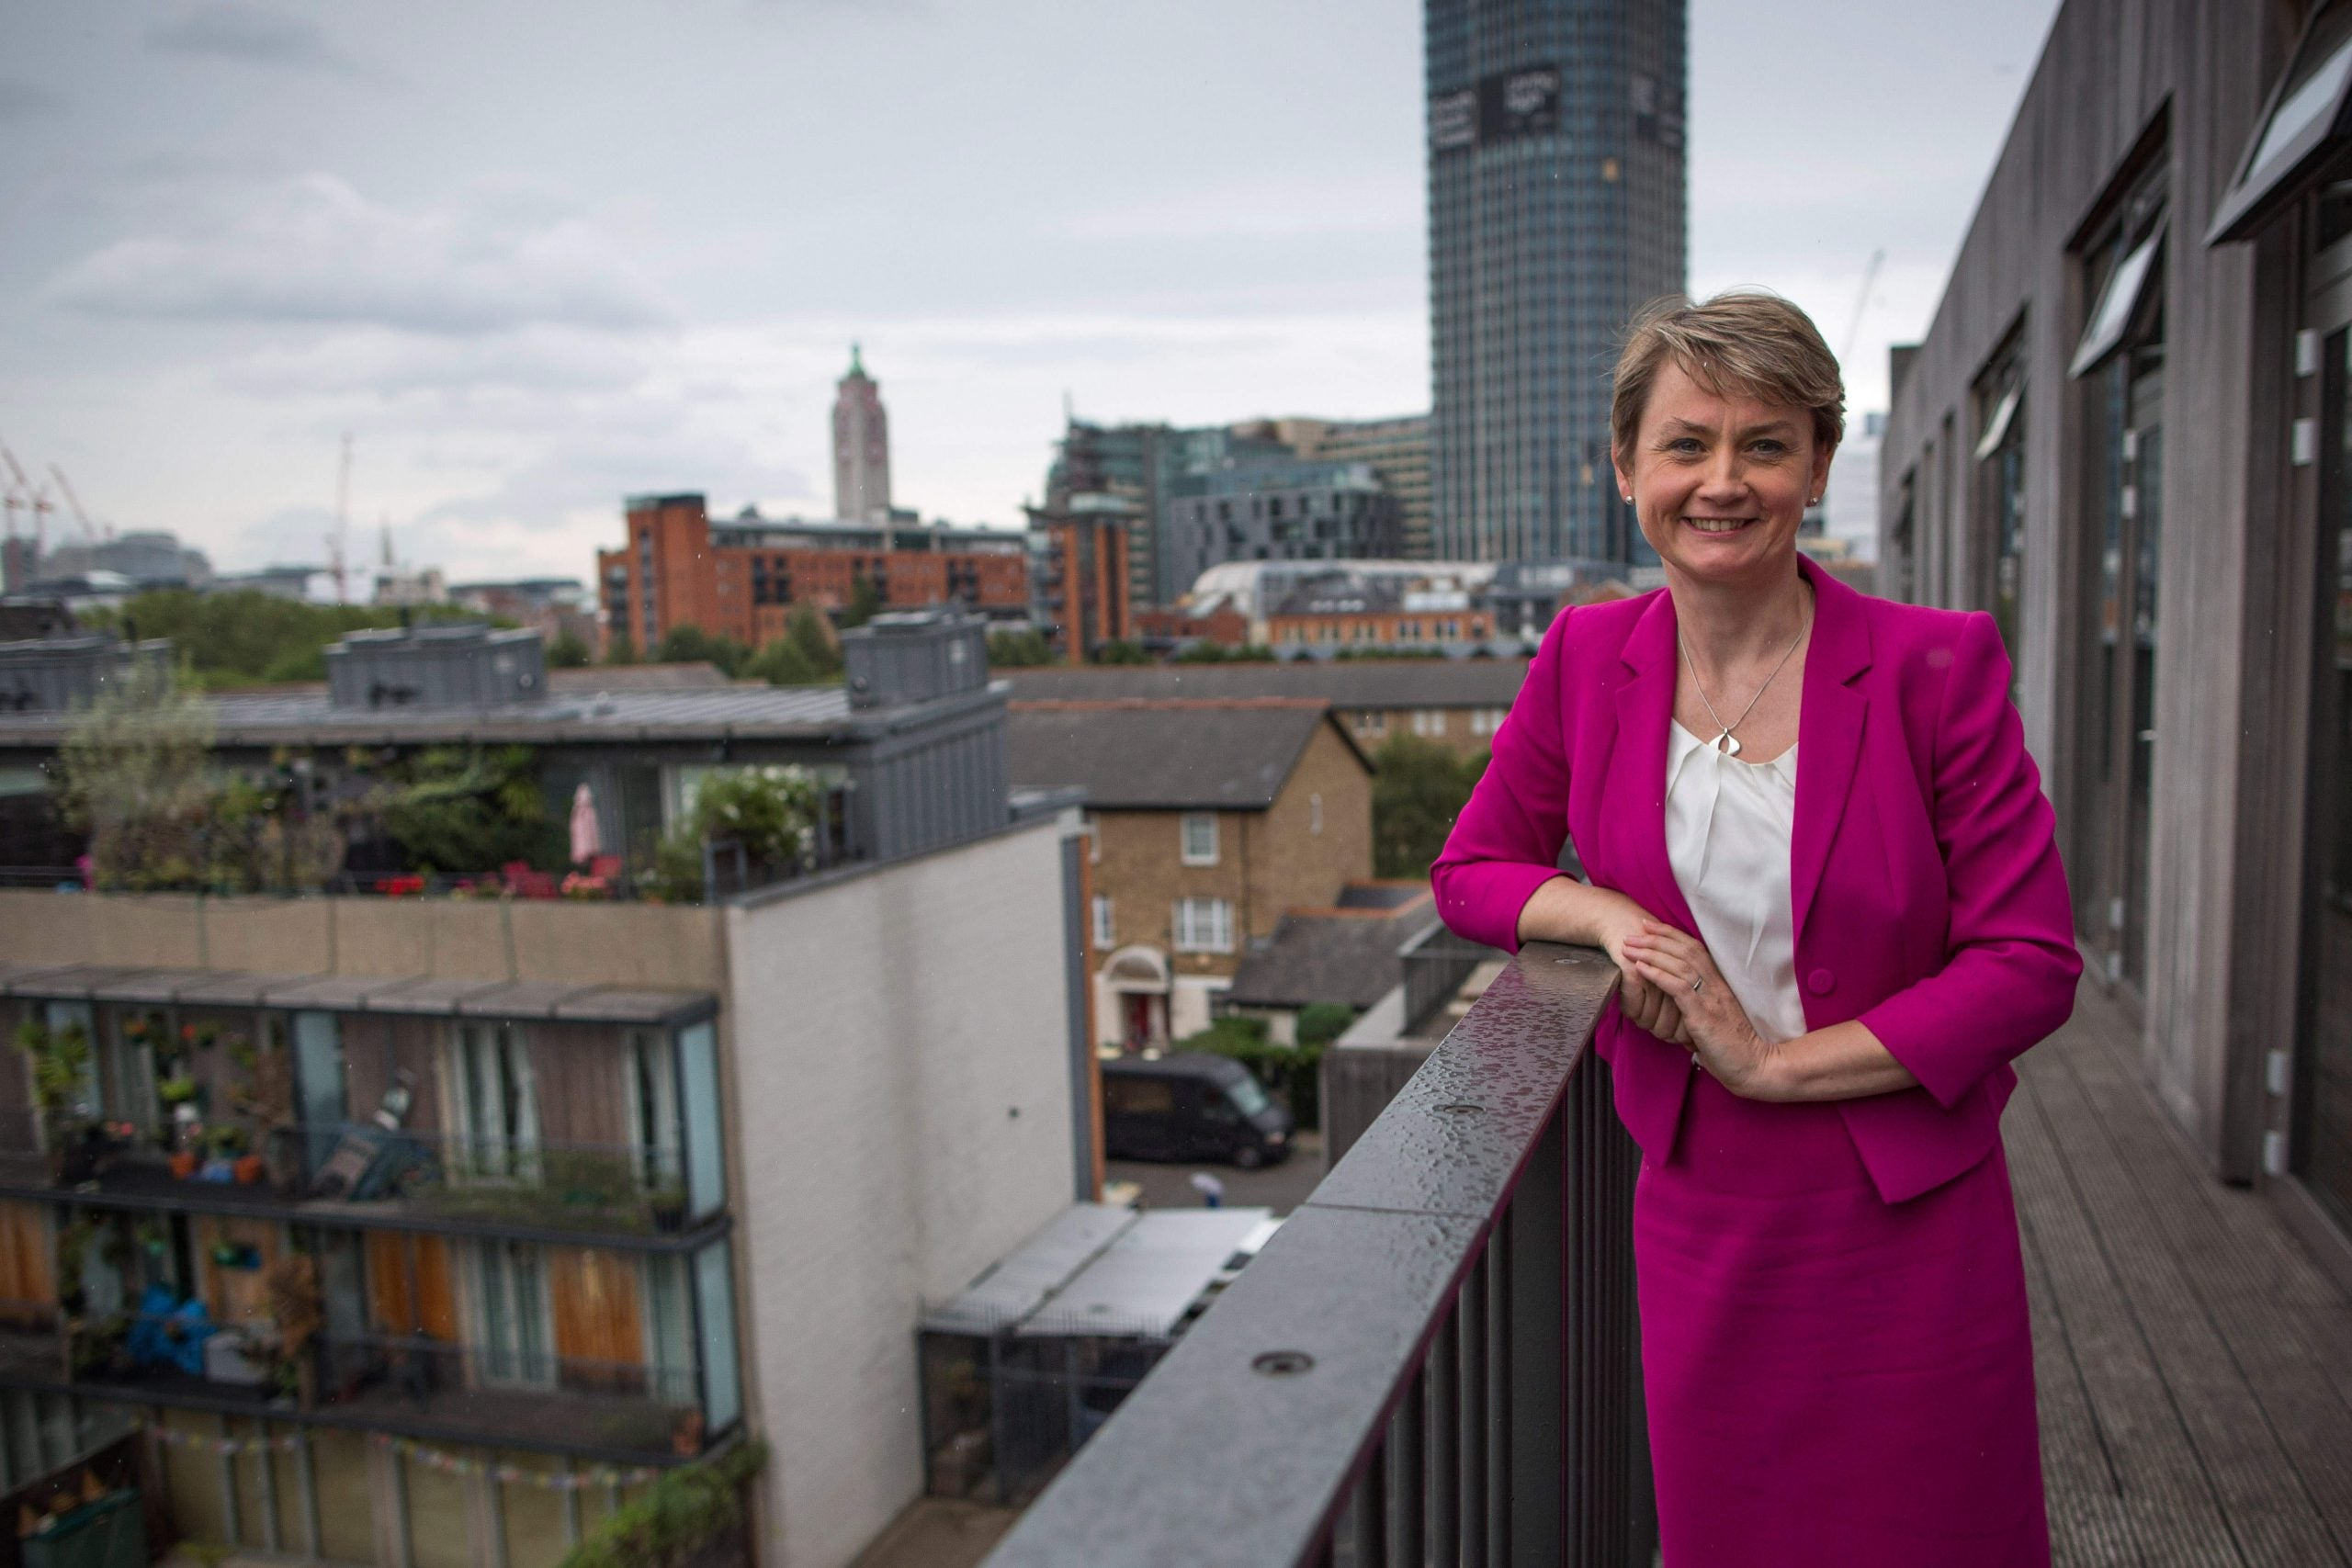 I believe only Yvette Cooper has the breadth of support to beat Jeremy Corbyn